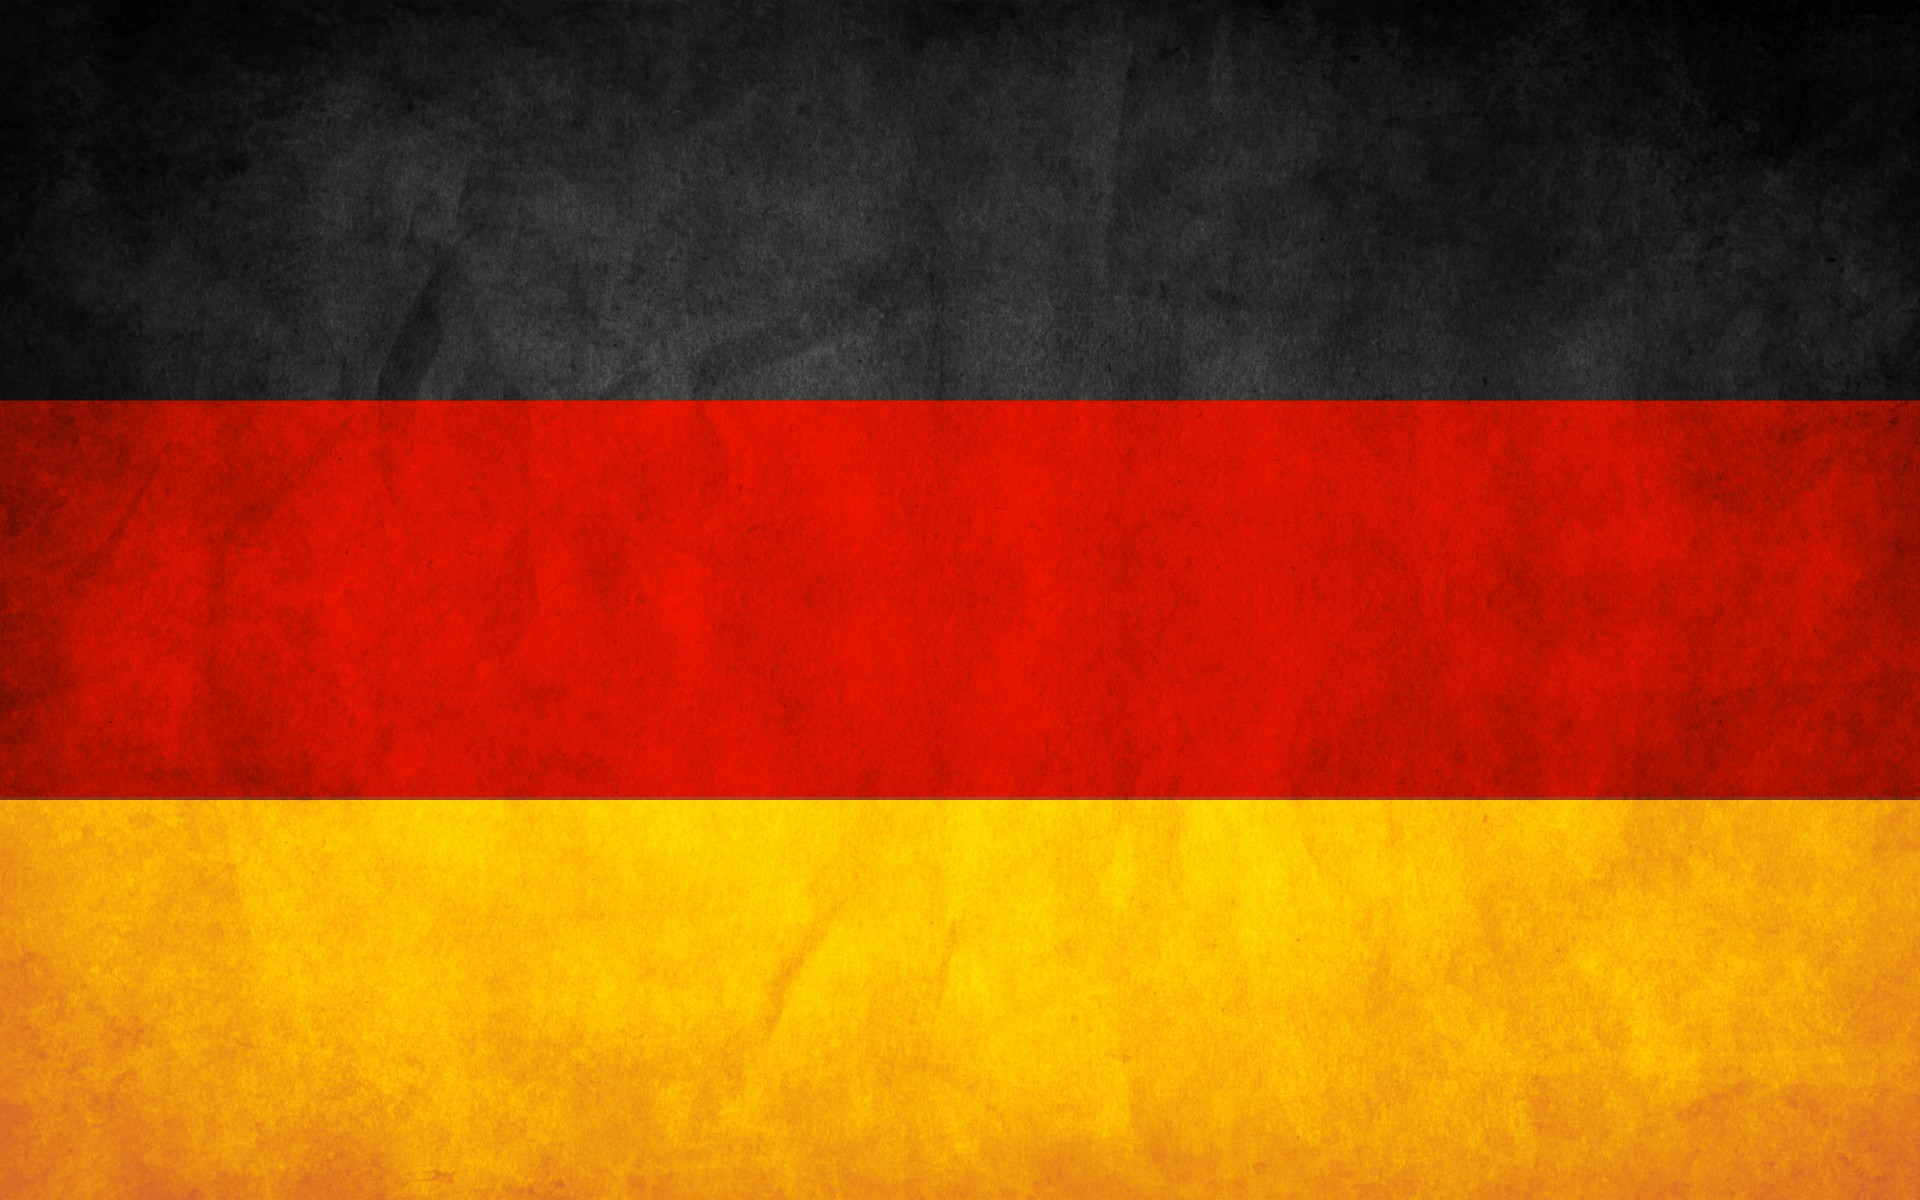 wallpaper computer flag grunge germany country 1920x1200 1920x1200